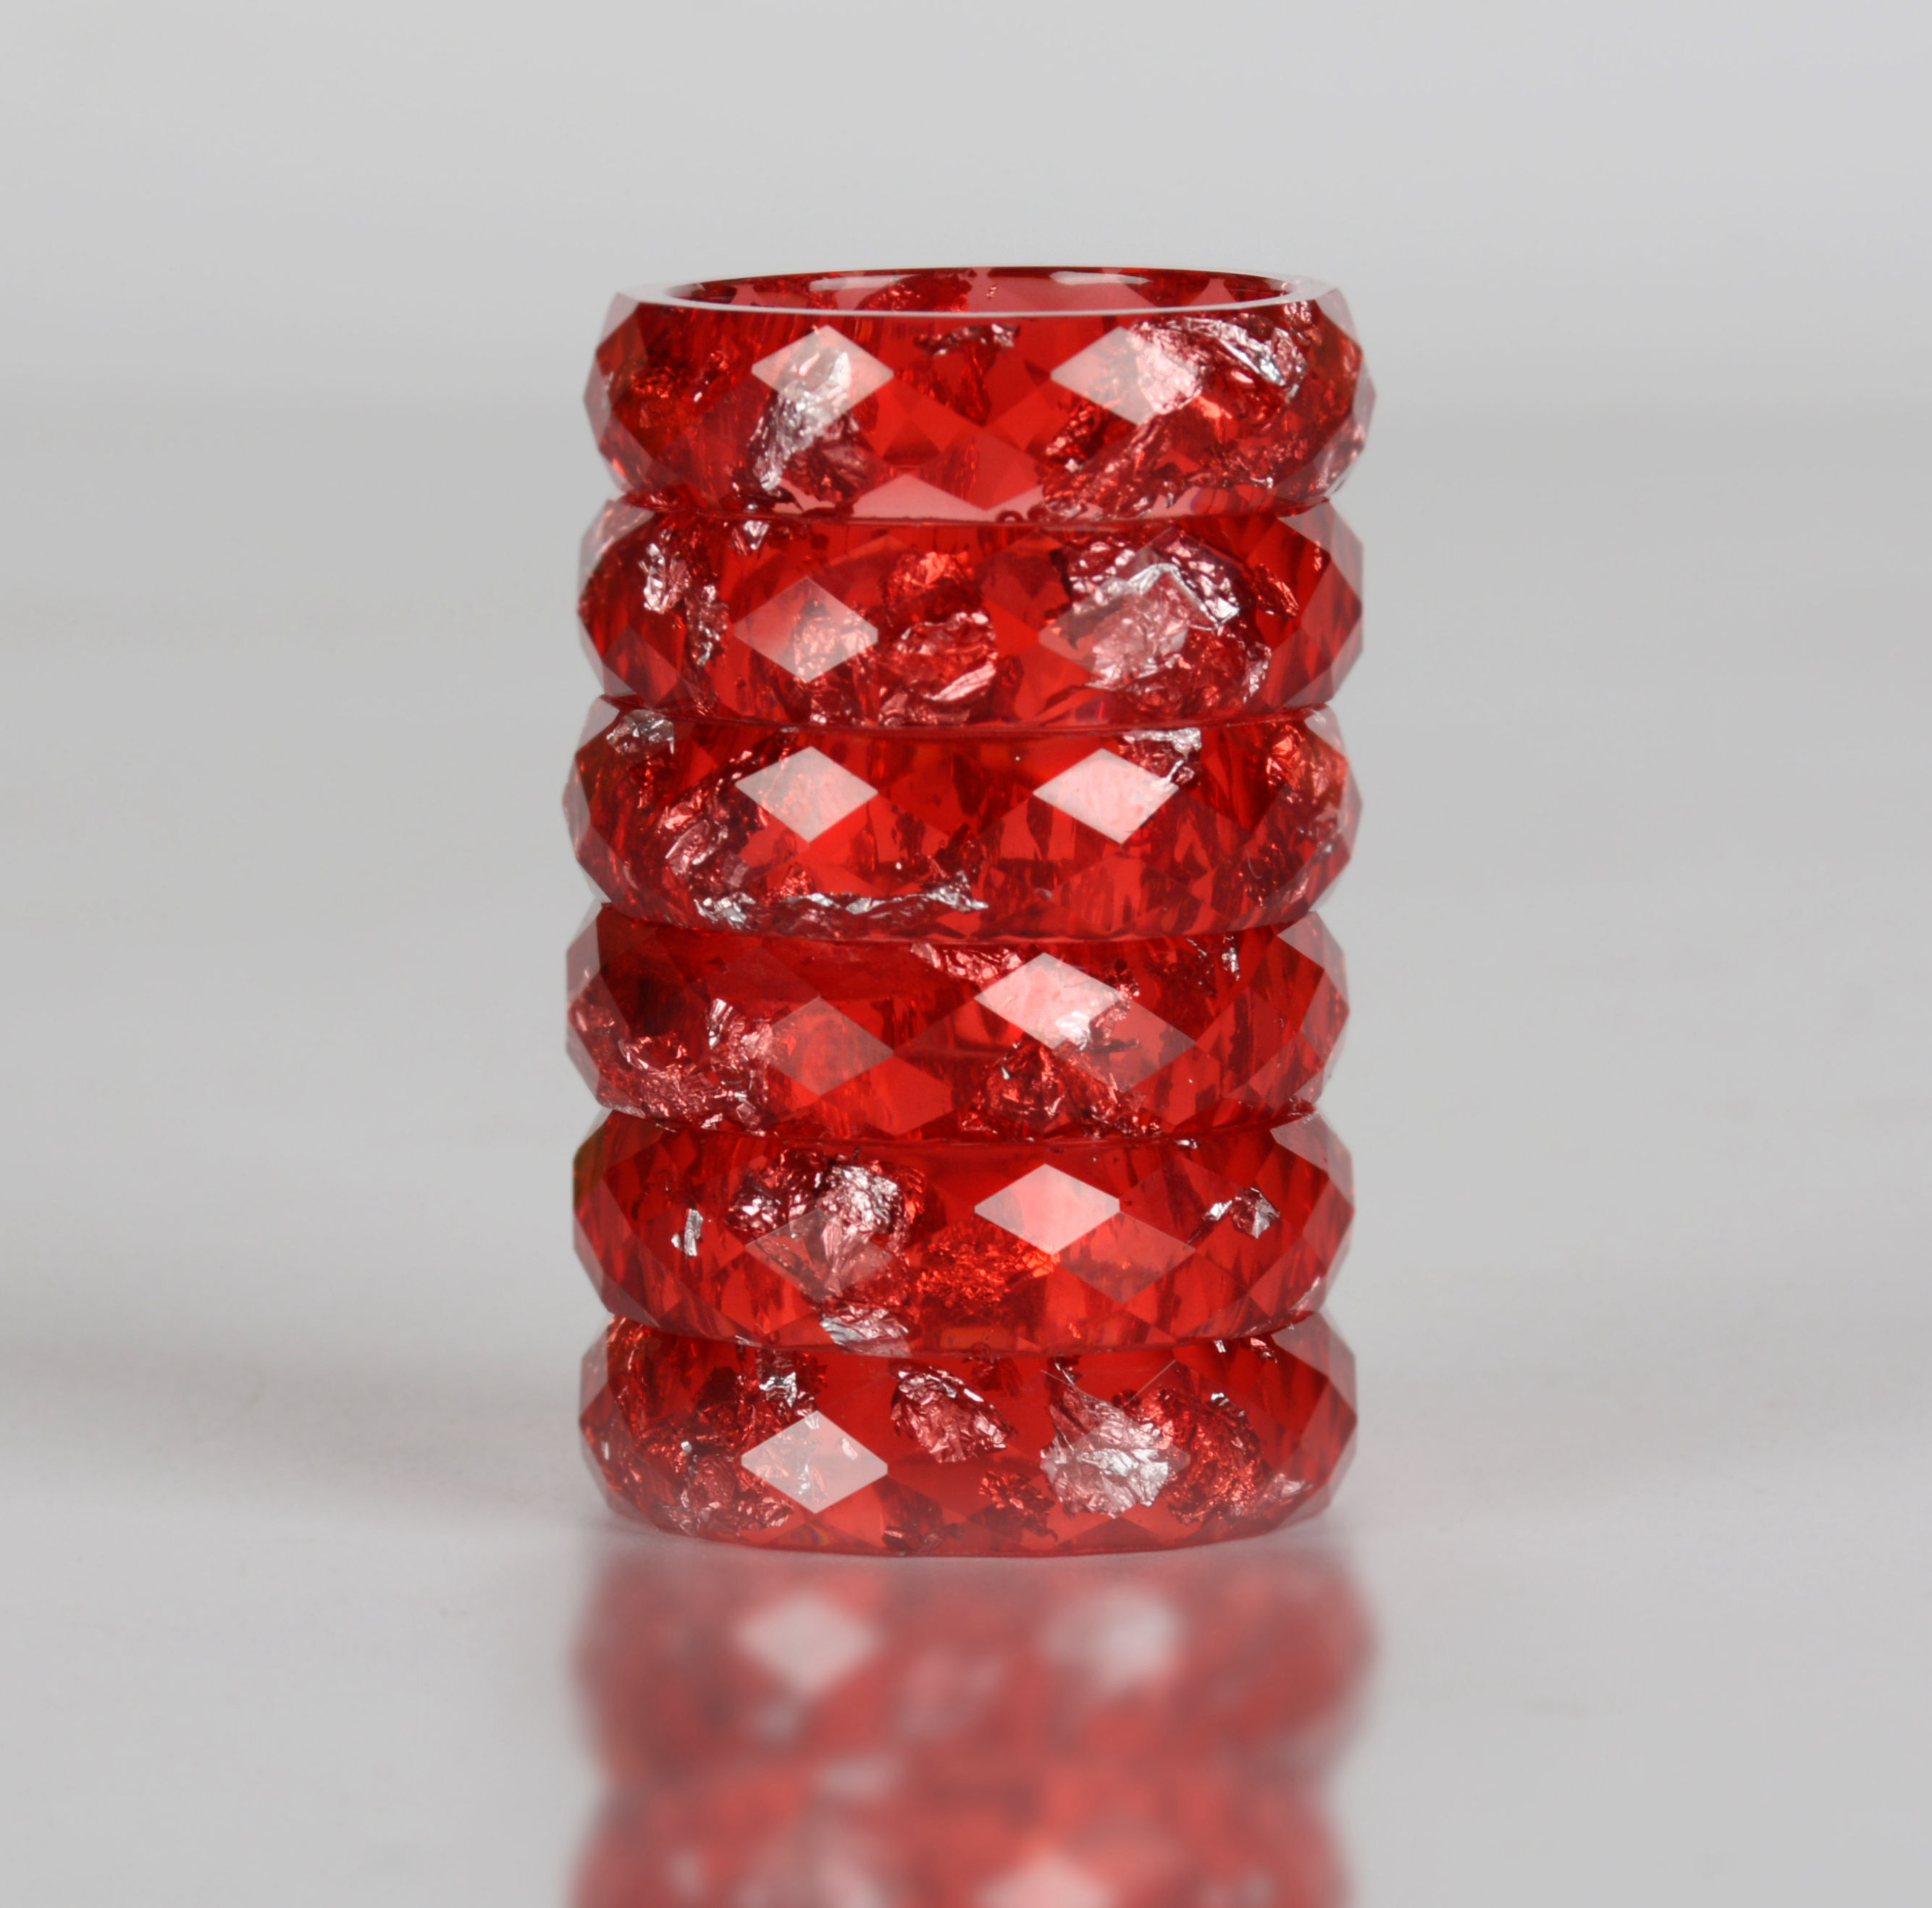 Hadf6785aaa444a06a0bf44a628d29404R - Crystalic Resin Ring